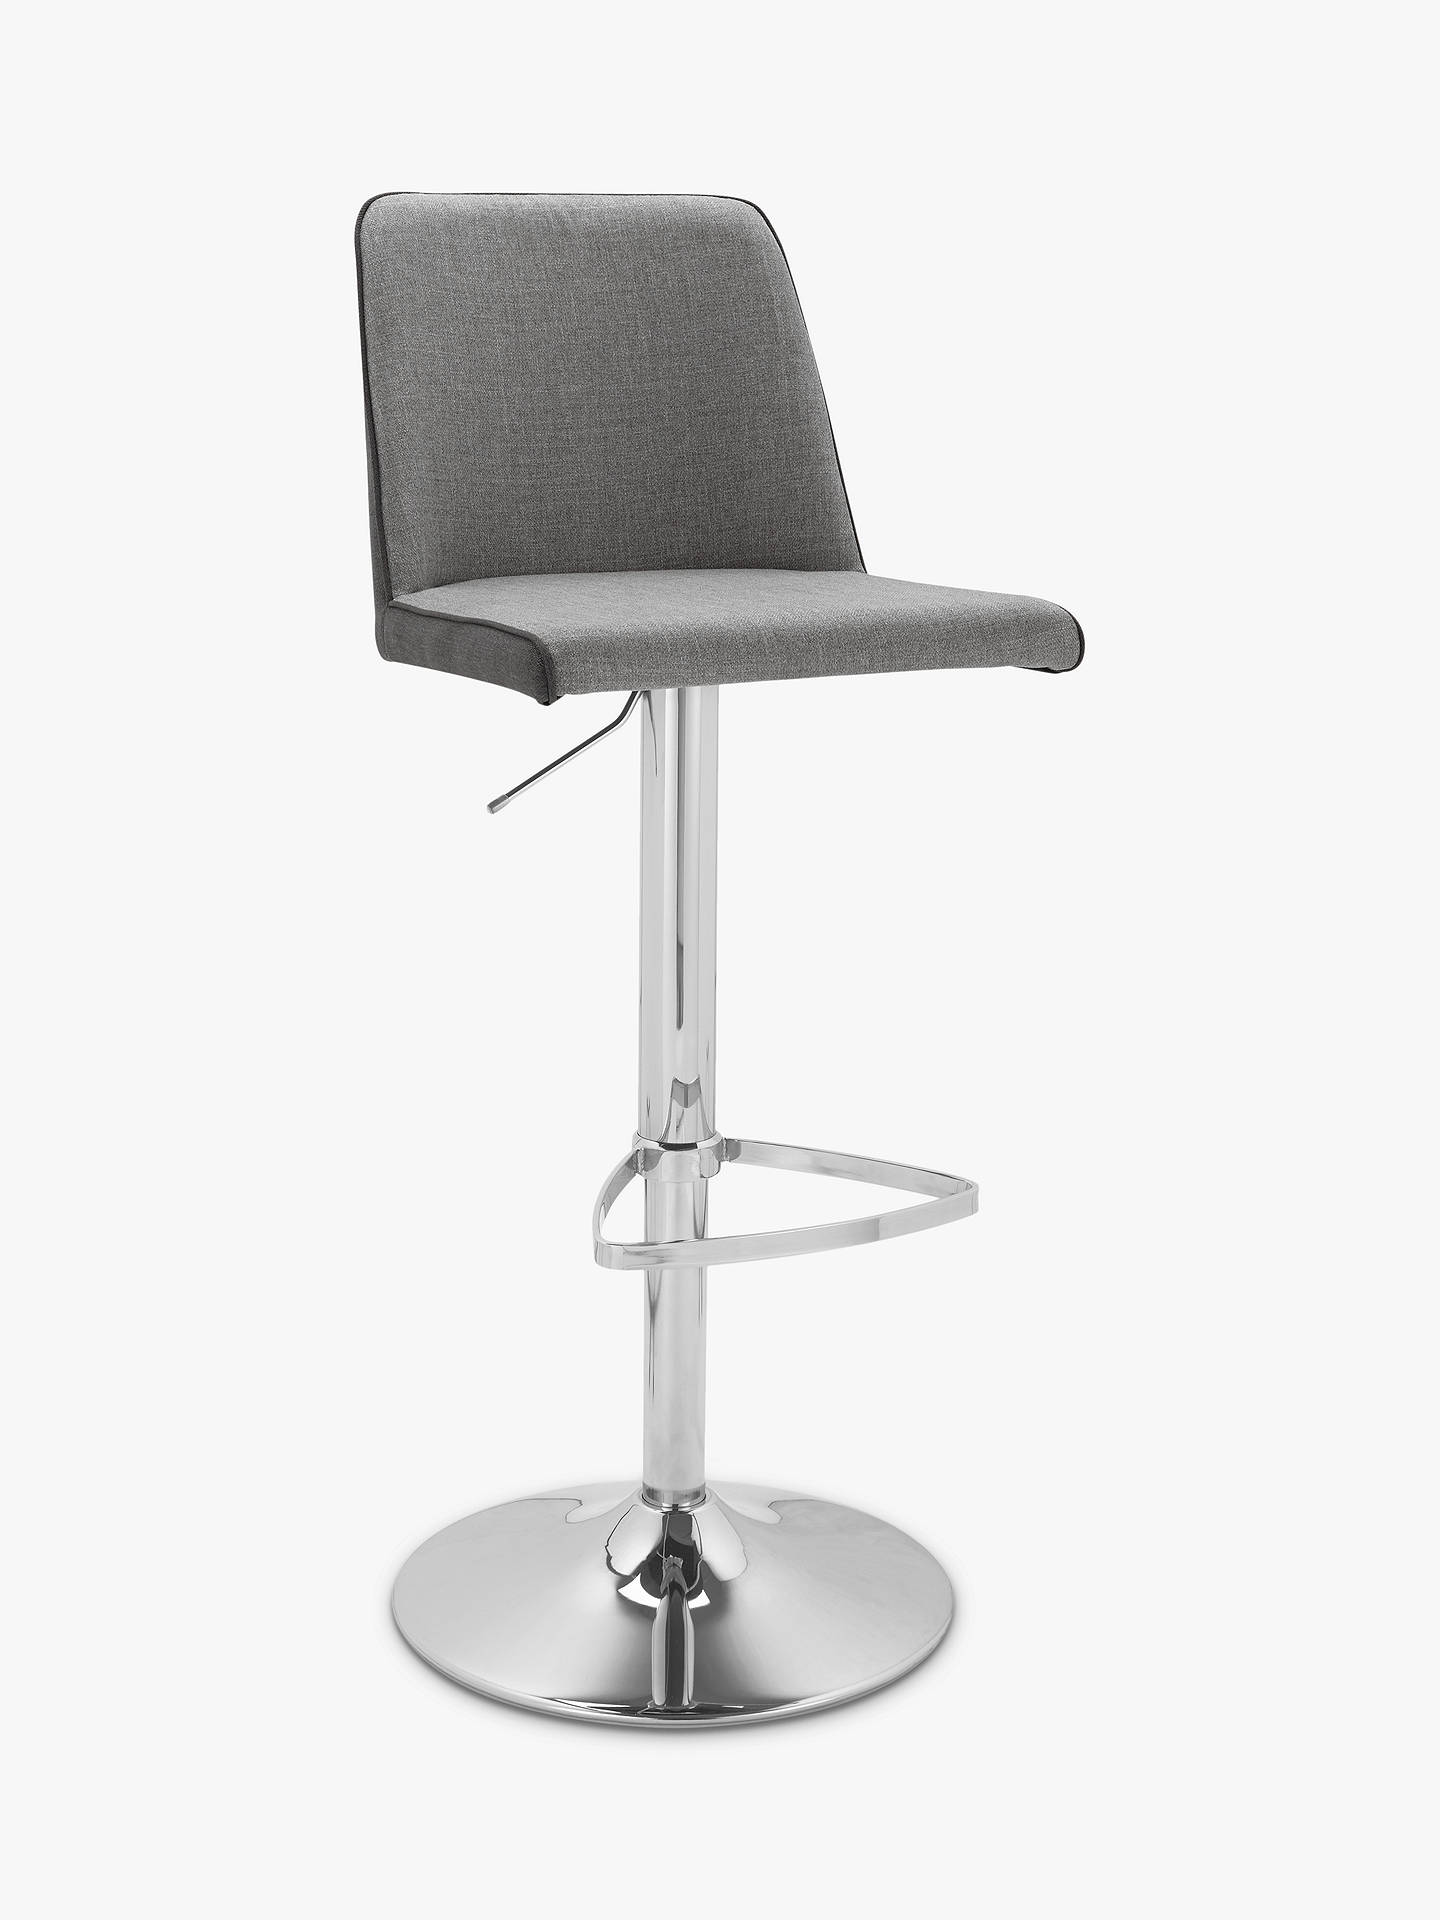 BuyHouse by John Lewis Anderson Bar Chair, Grey Online at johnlewis.com